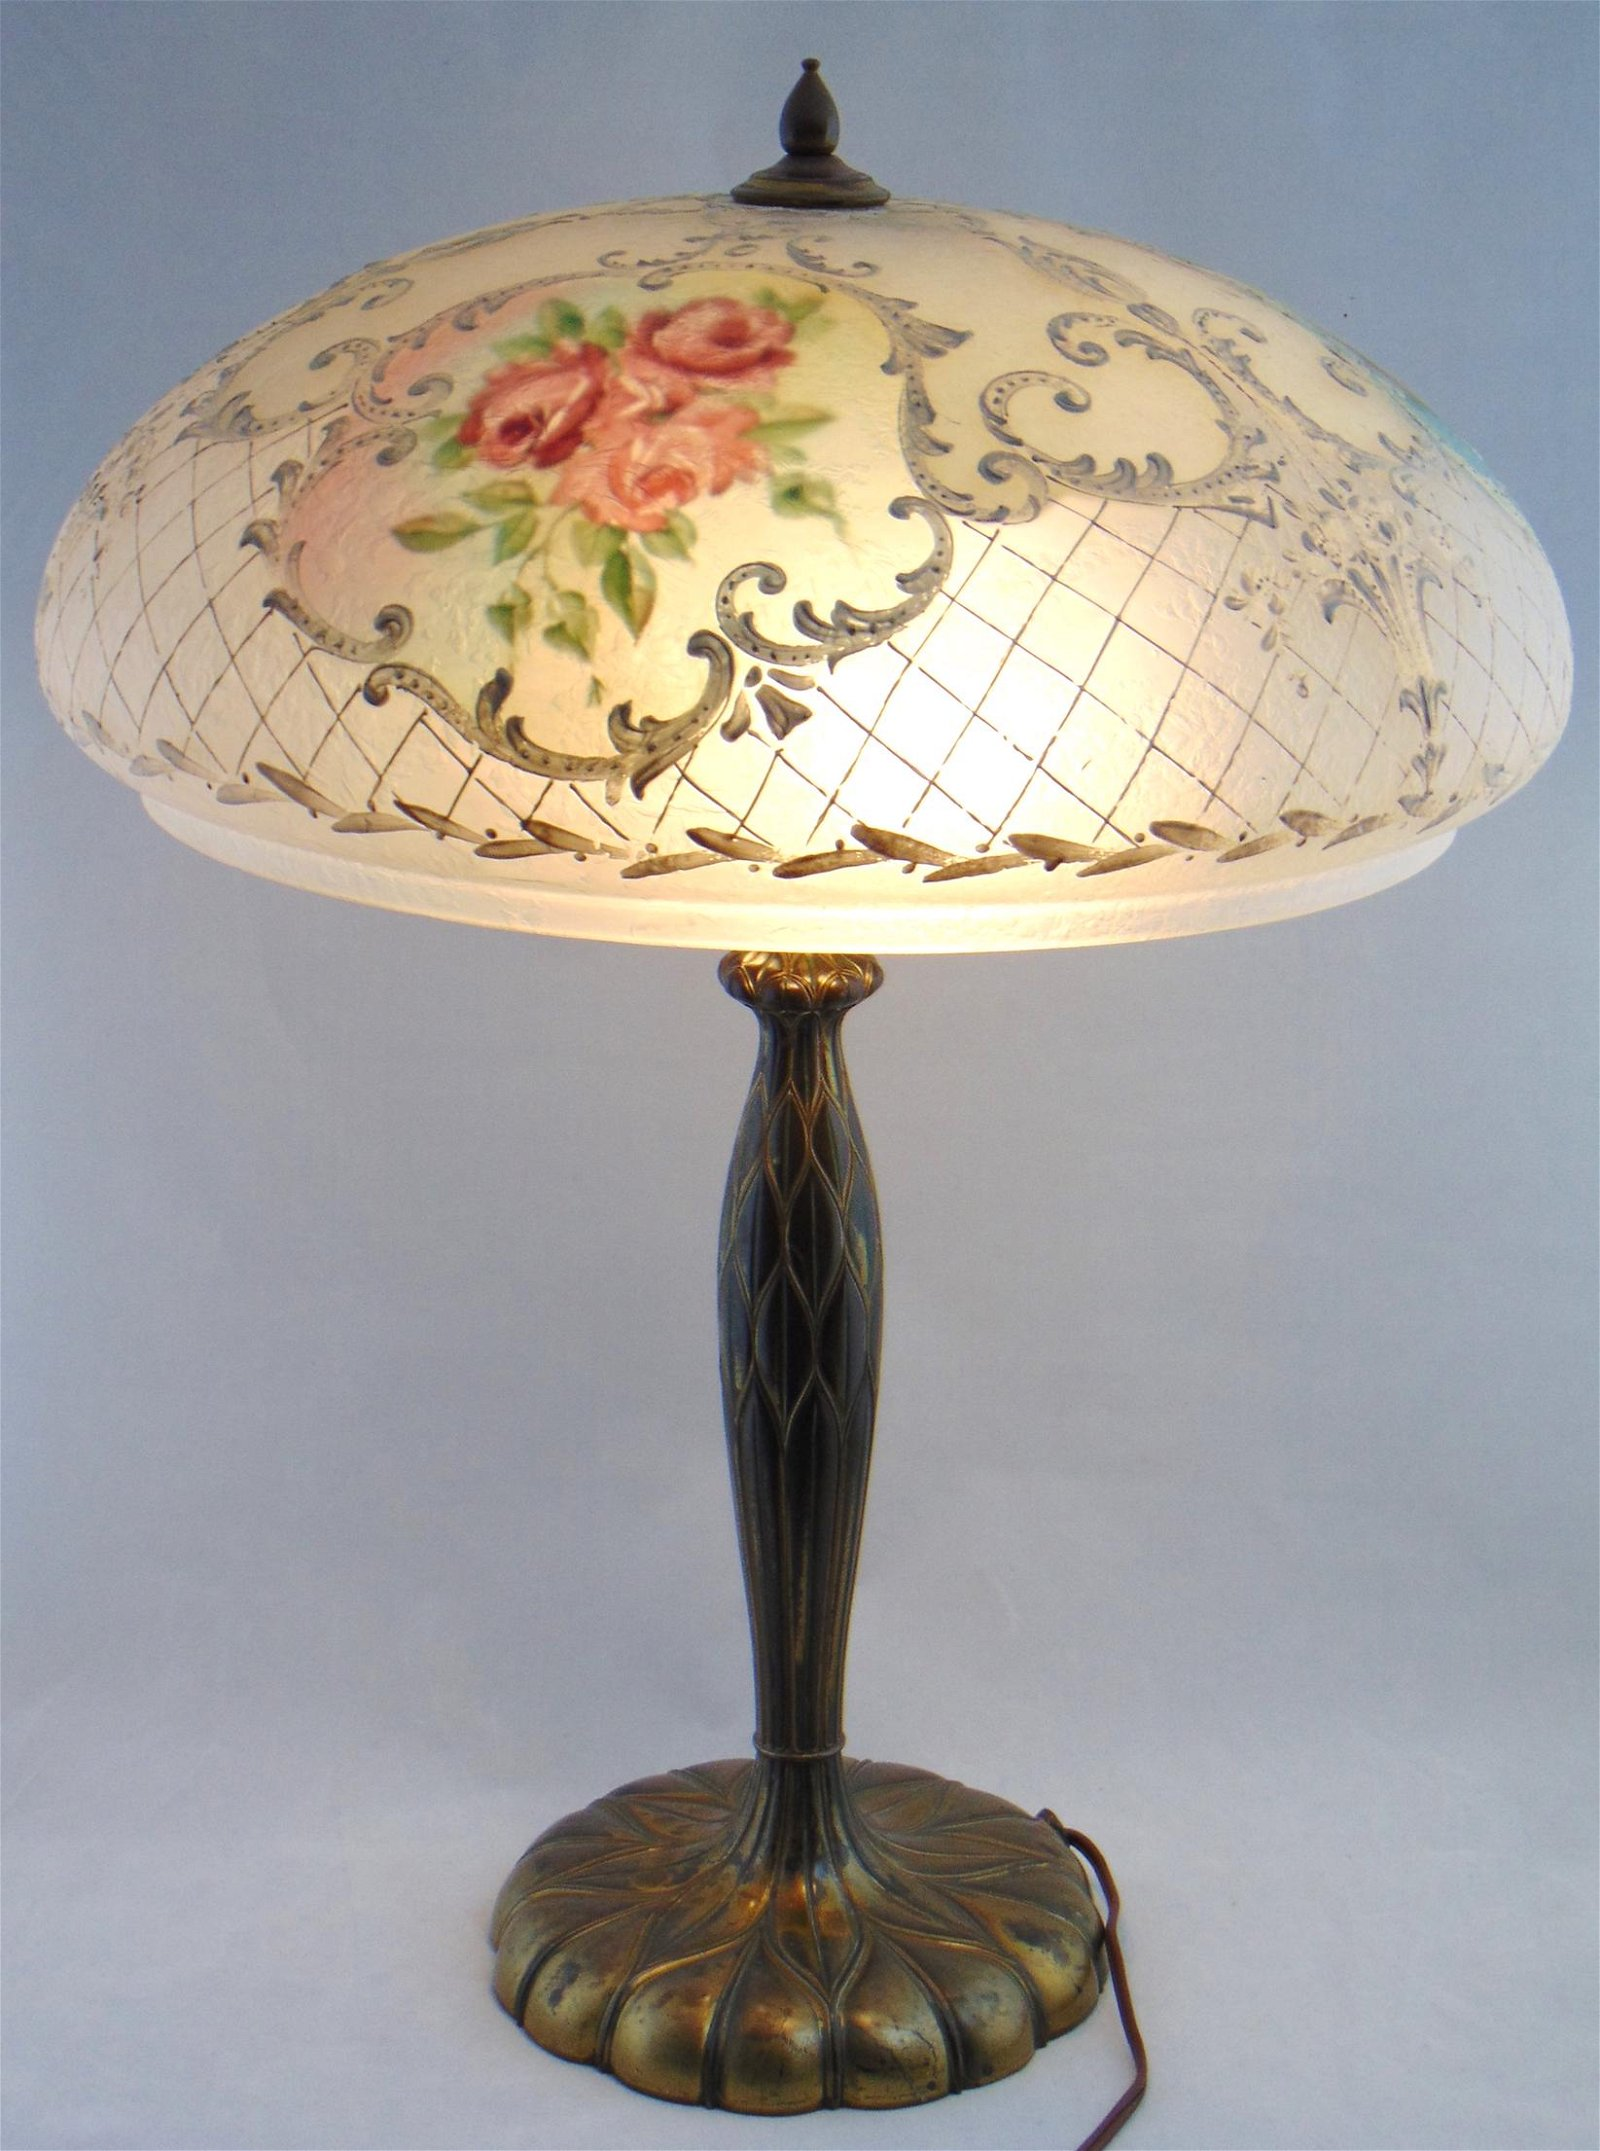 Pairpoint art glass table lamp